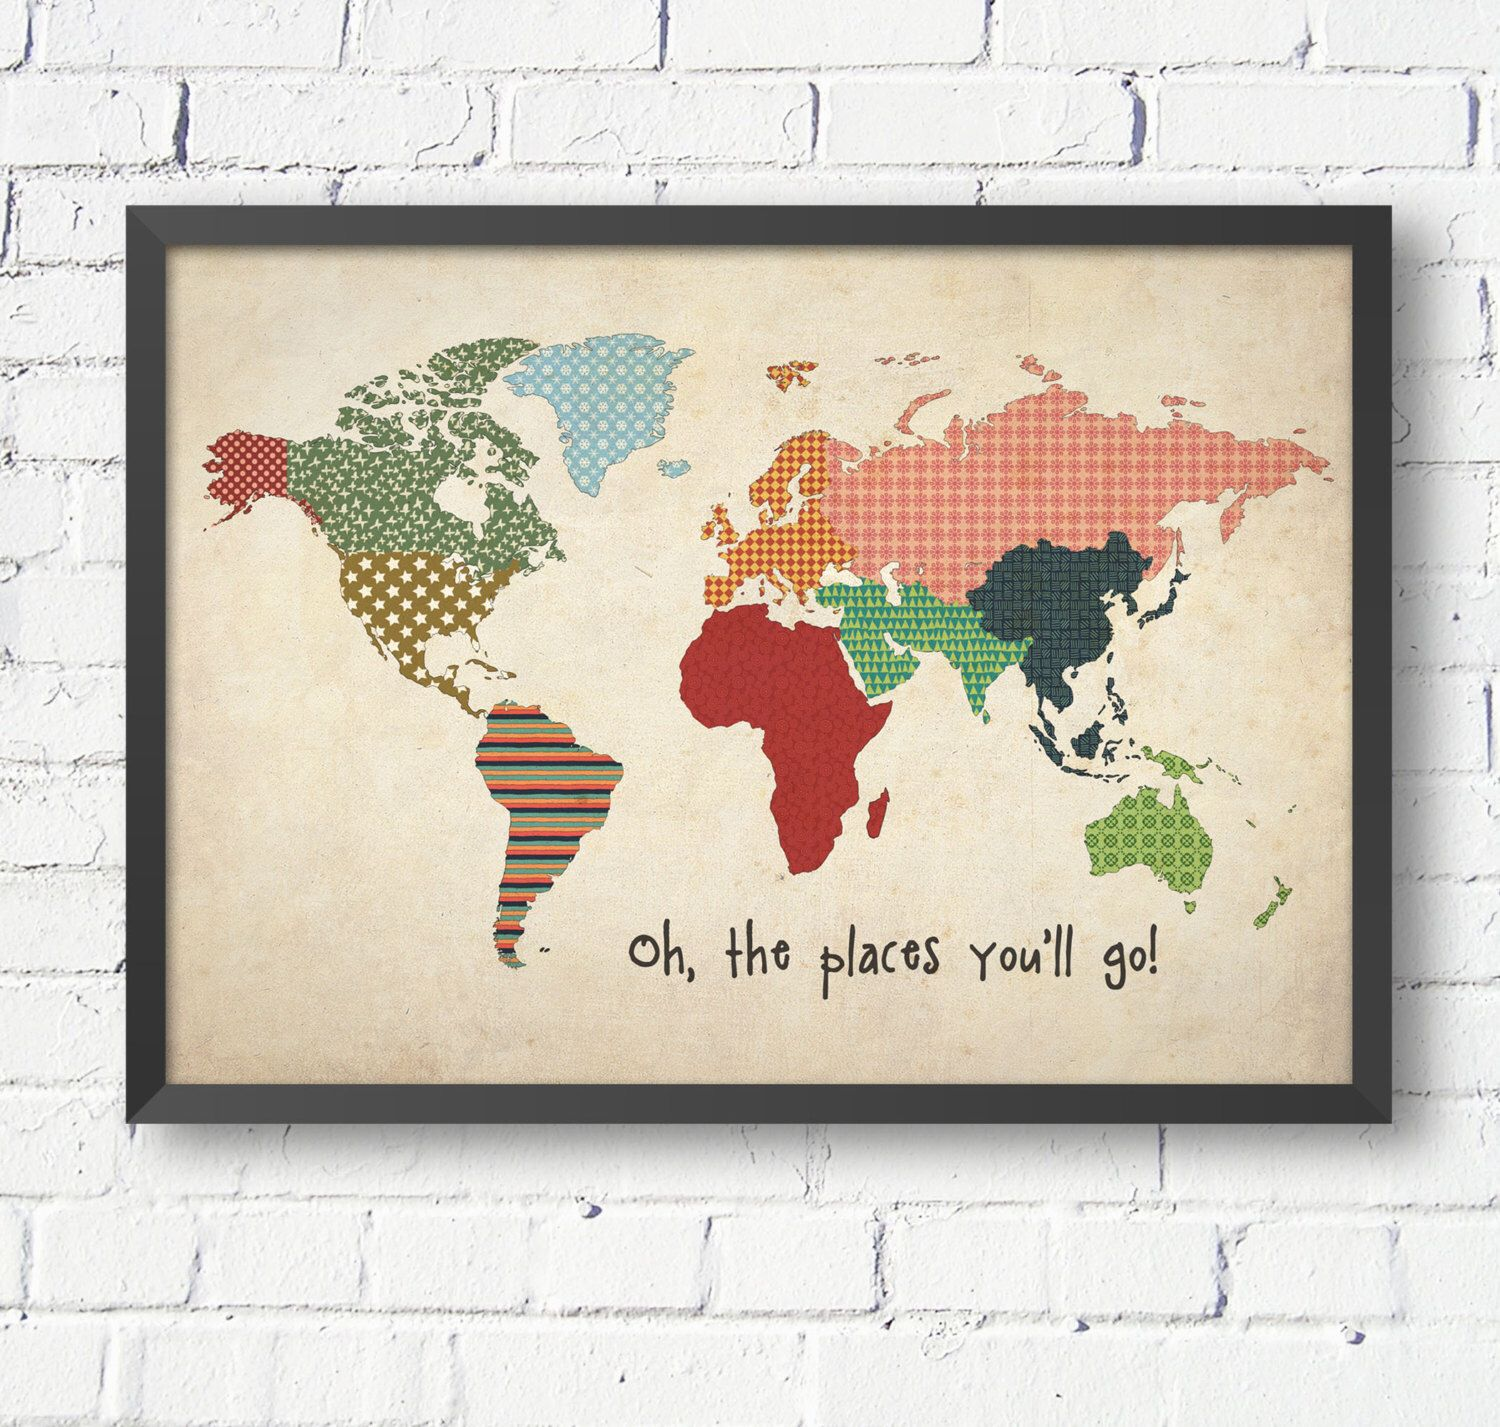 Vintage world map world map poster size a1 a2 a3 a4 world map for vintage world map world map poster size a1 a2 a3 a4 world map for kids nursery decor kids room ideas by modernkidsgallery on etsy gumiabroncs Choice Image